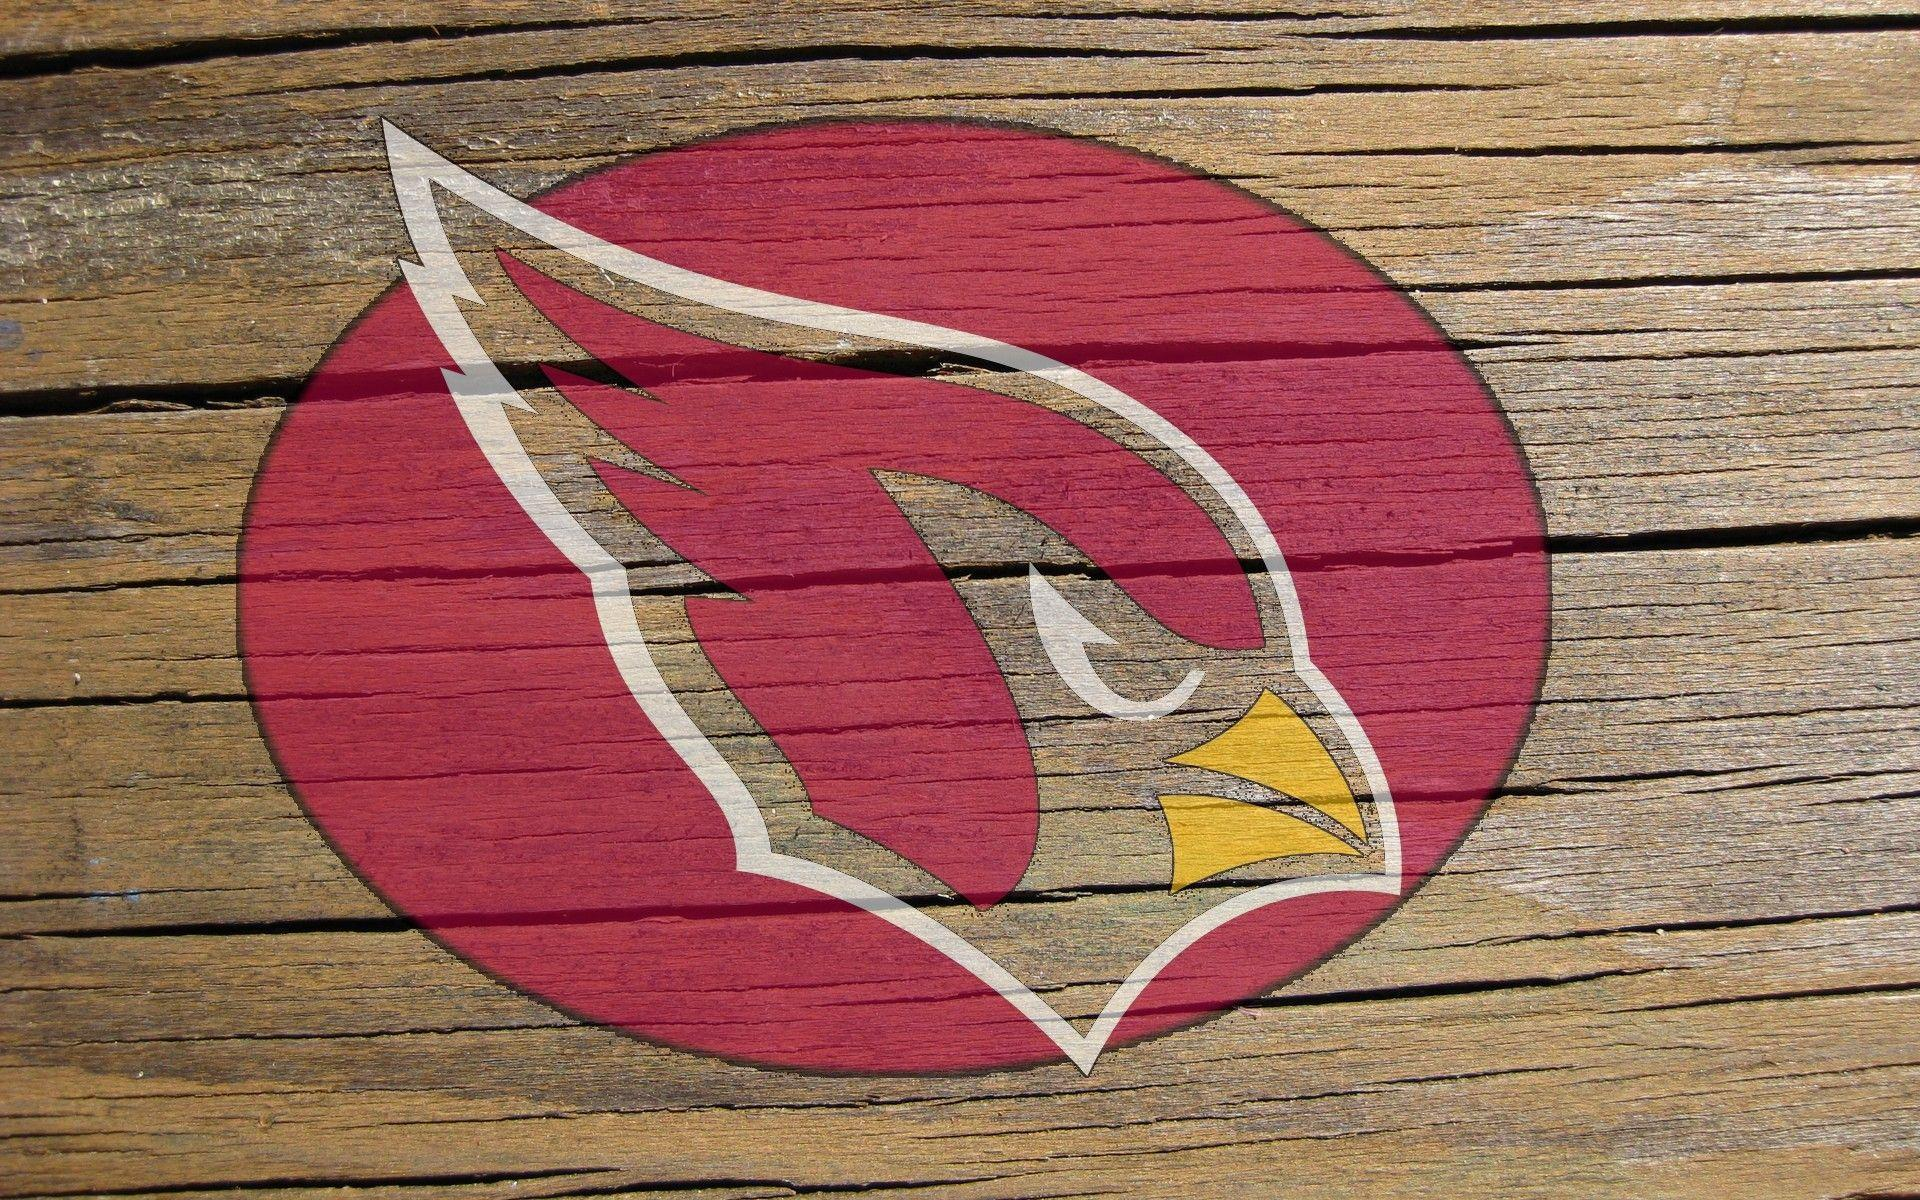 Zone arizona cardinals wallpaper cardinals logo desktop background ...